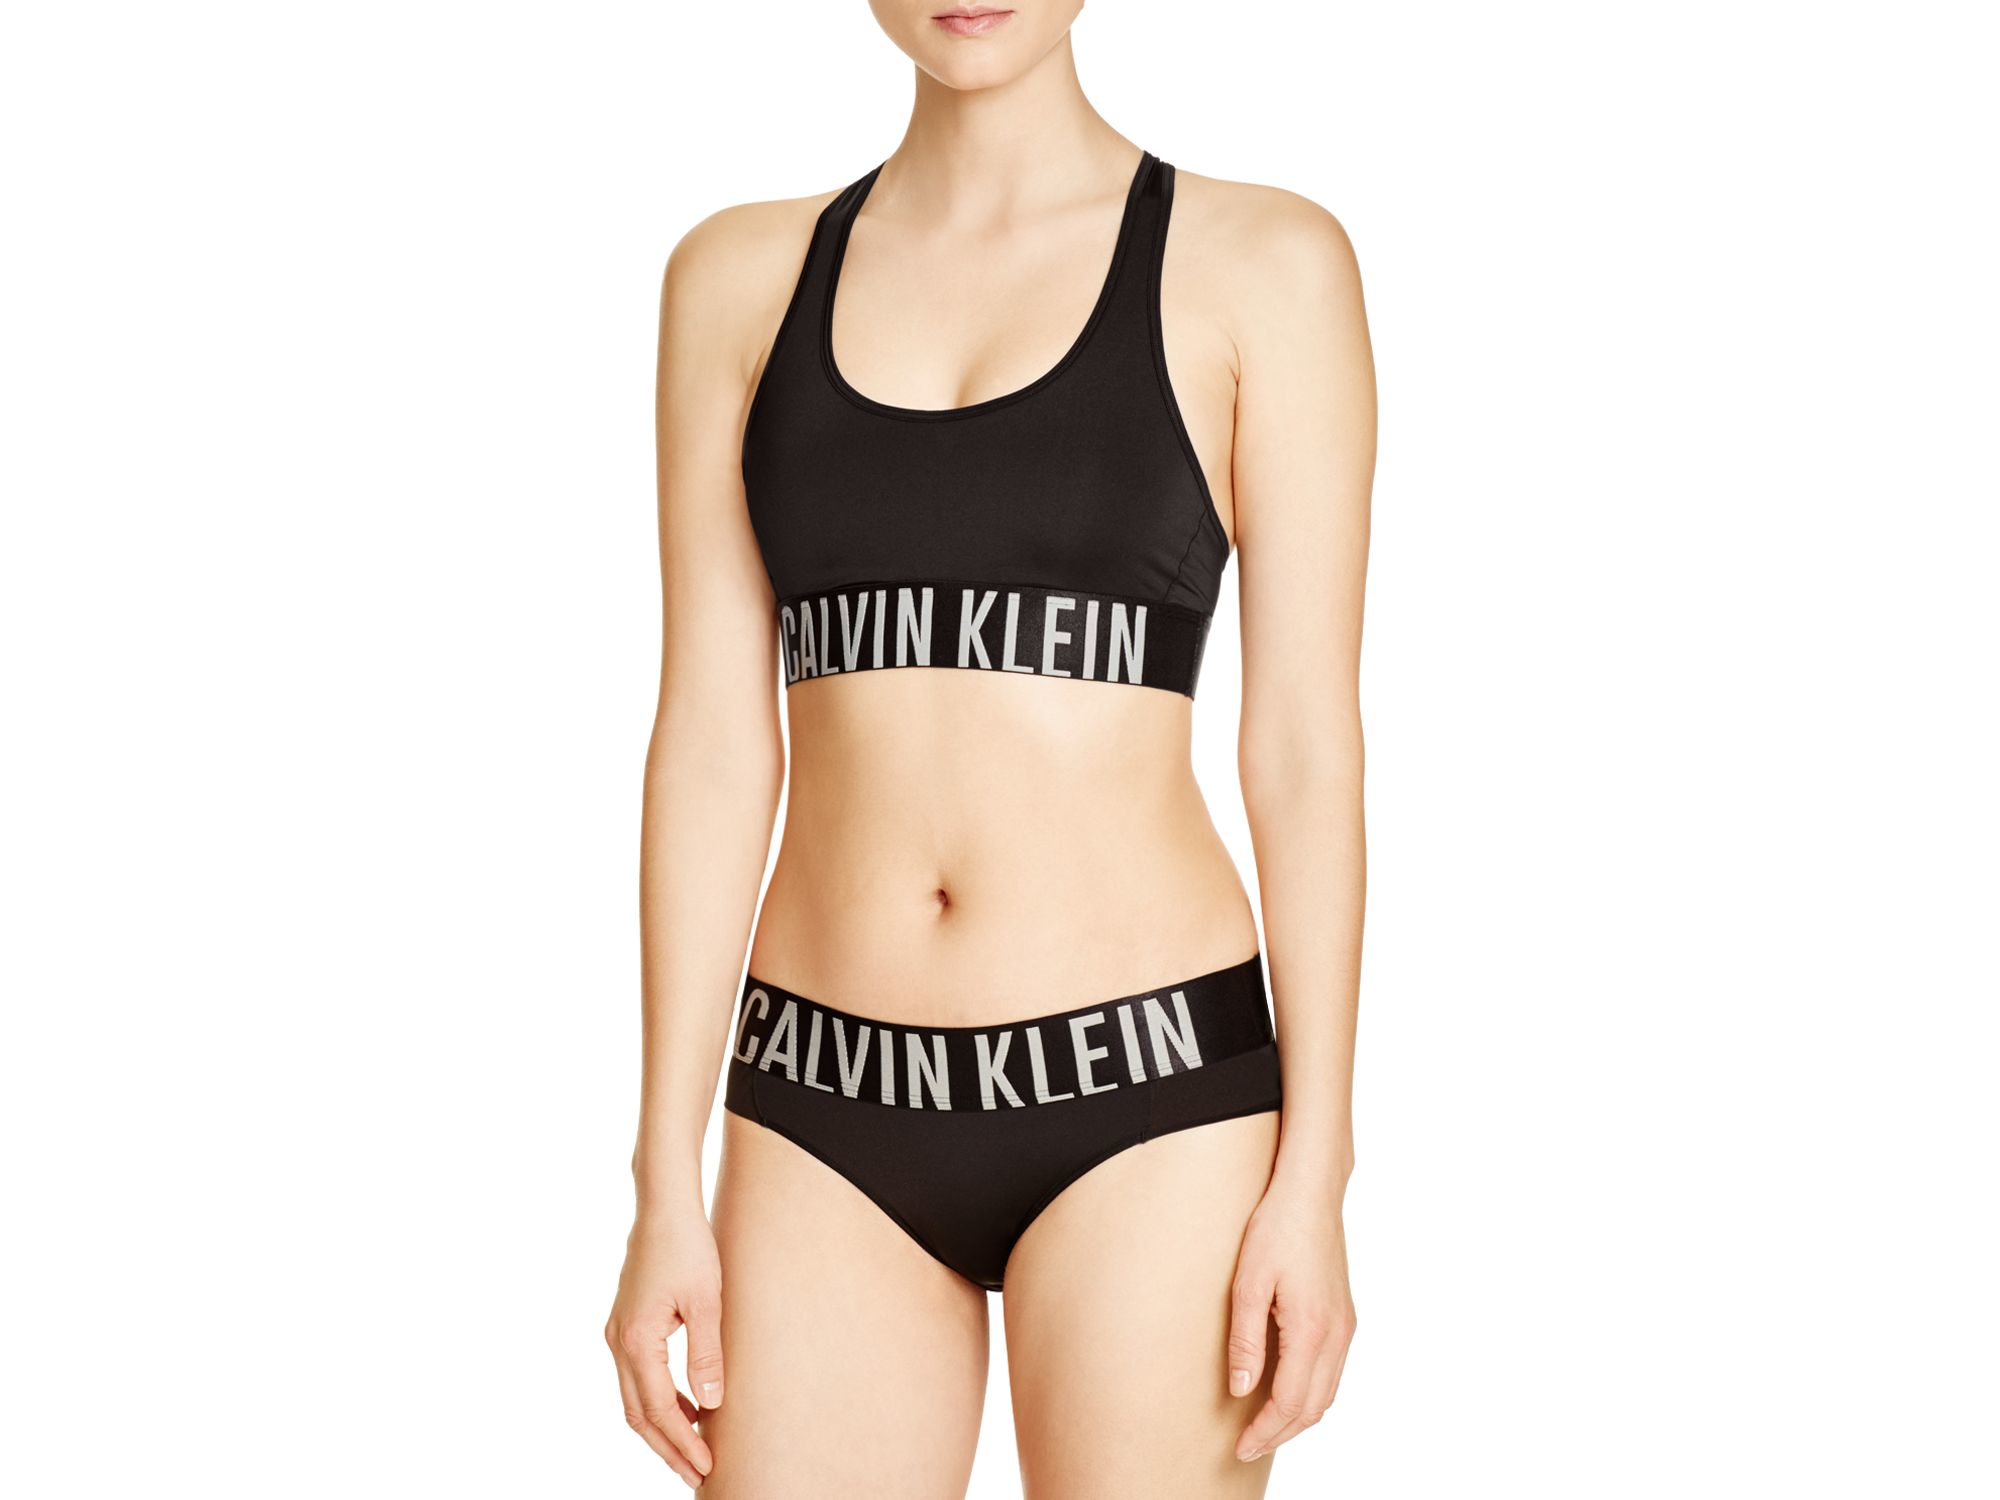 00b4325d47 Lyst - Calvin Klein Intense Power Racerback Bralette  qf1540 in Black